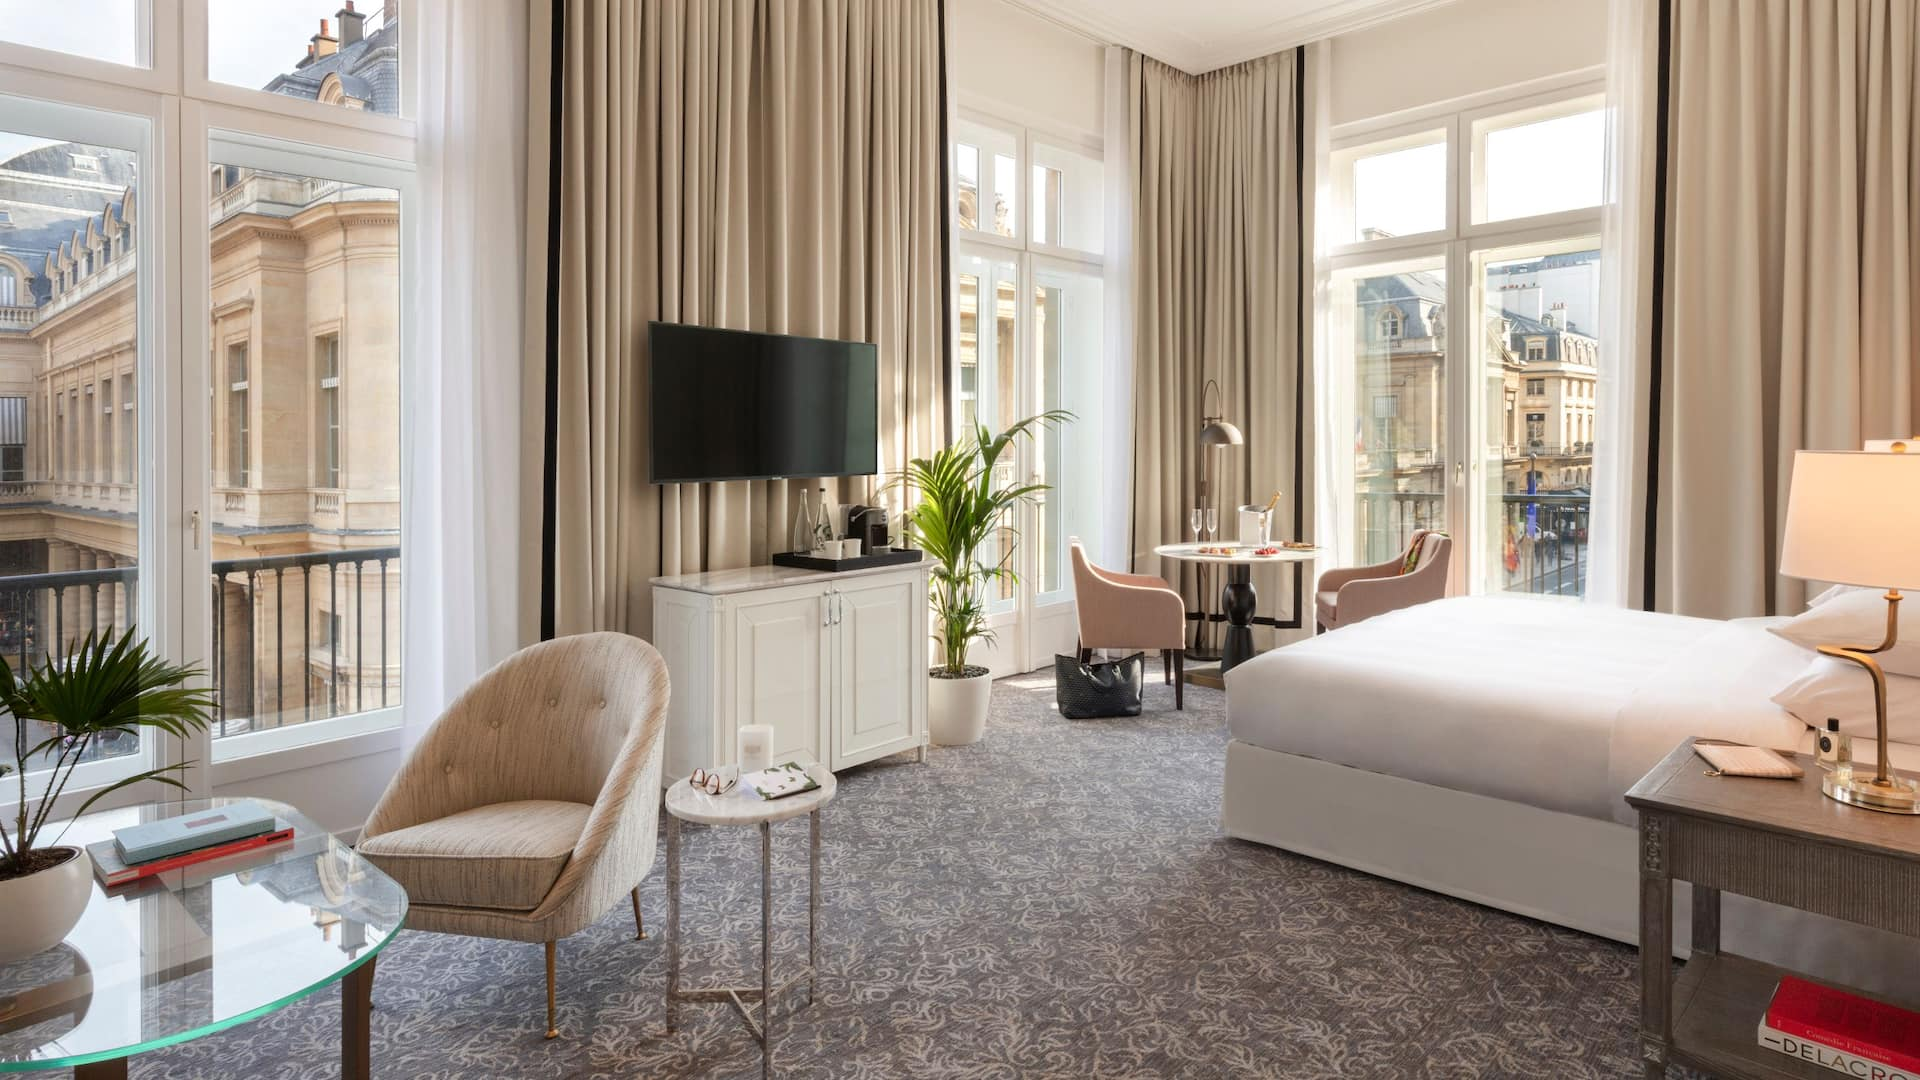 Renovated Bedroom at Hôtel du Louvre by Hyatt